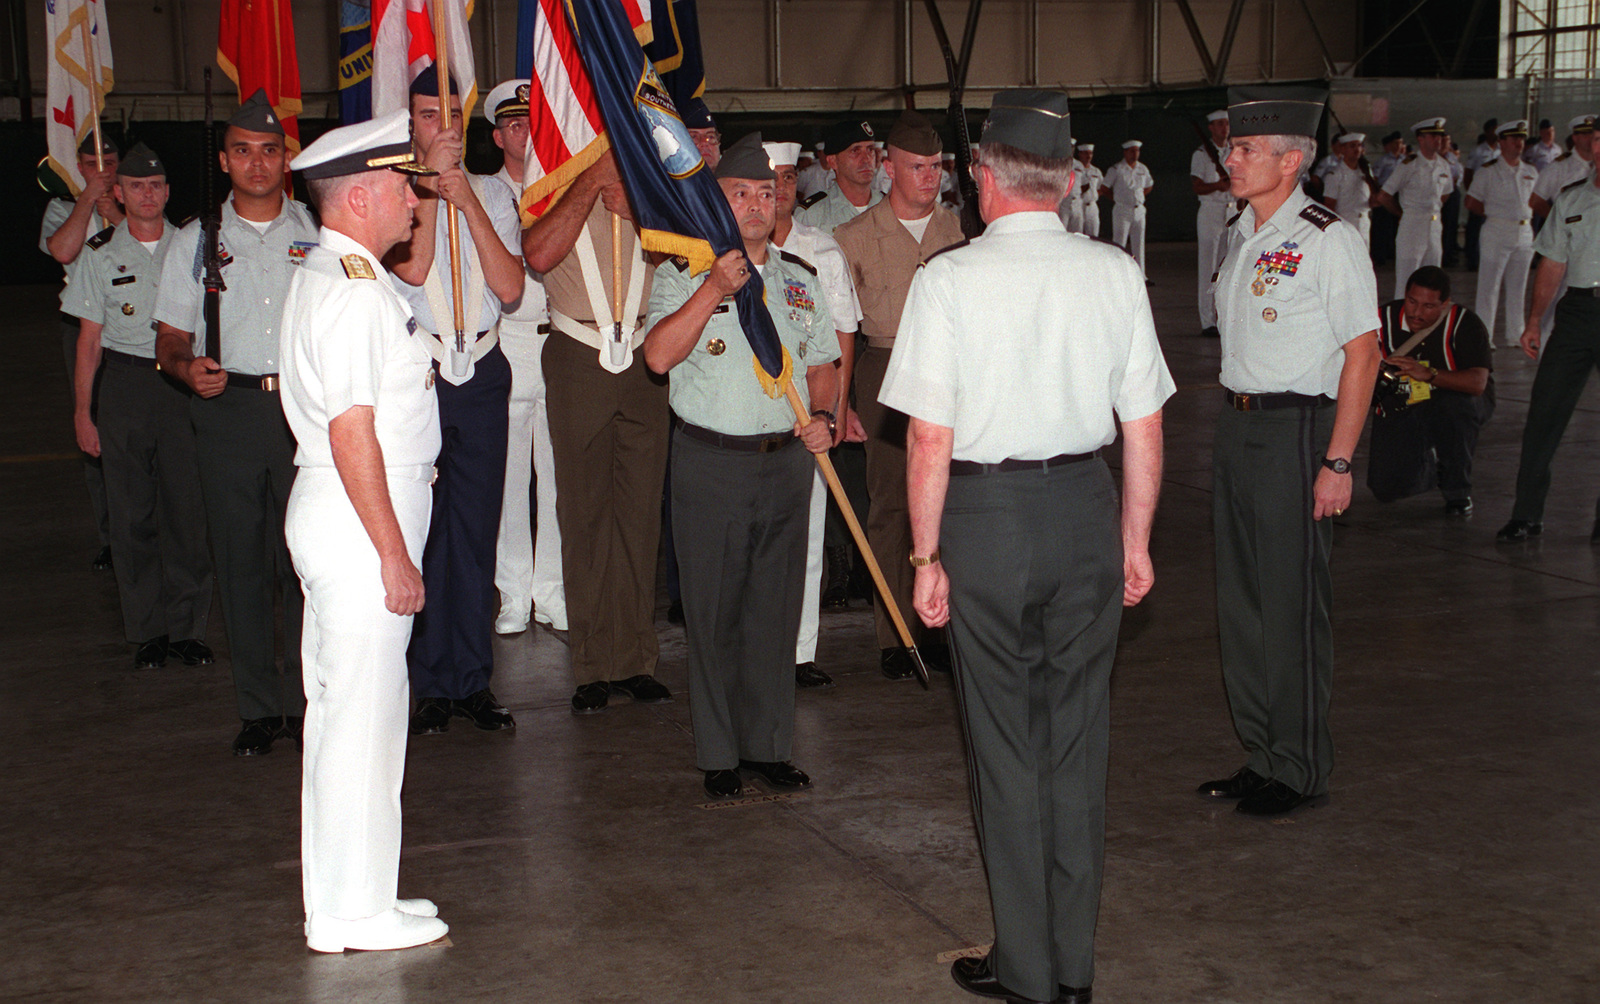 RADM Walter Doran, (left) Acting Commander in CHIEF (CINC) U.S. Southern Command (USSOUTHCOM), waits as USSOUTHCOM's CSM Carlos Legoas prepares for the ceremonial passing of the command flag with GEN John Shalikashvili (back to camera), Chairman of the Joint Chiefs of STAFF, and outgoing CINC, GEN Wesley Clark during the Change of Command ceremonies